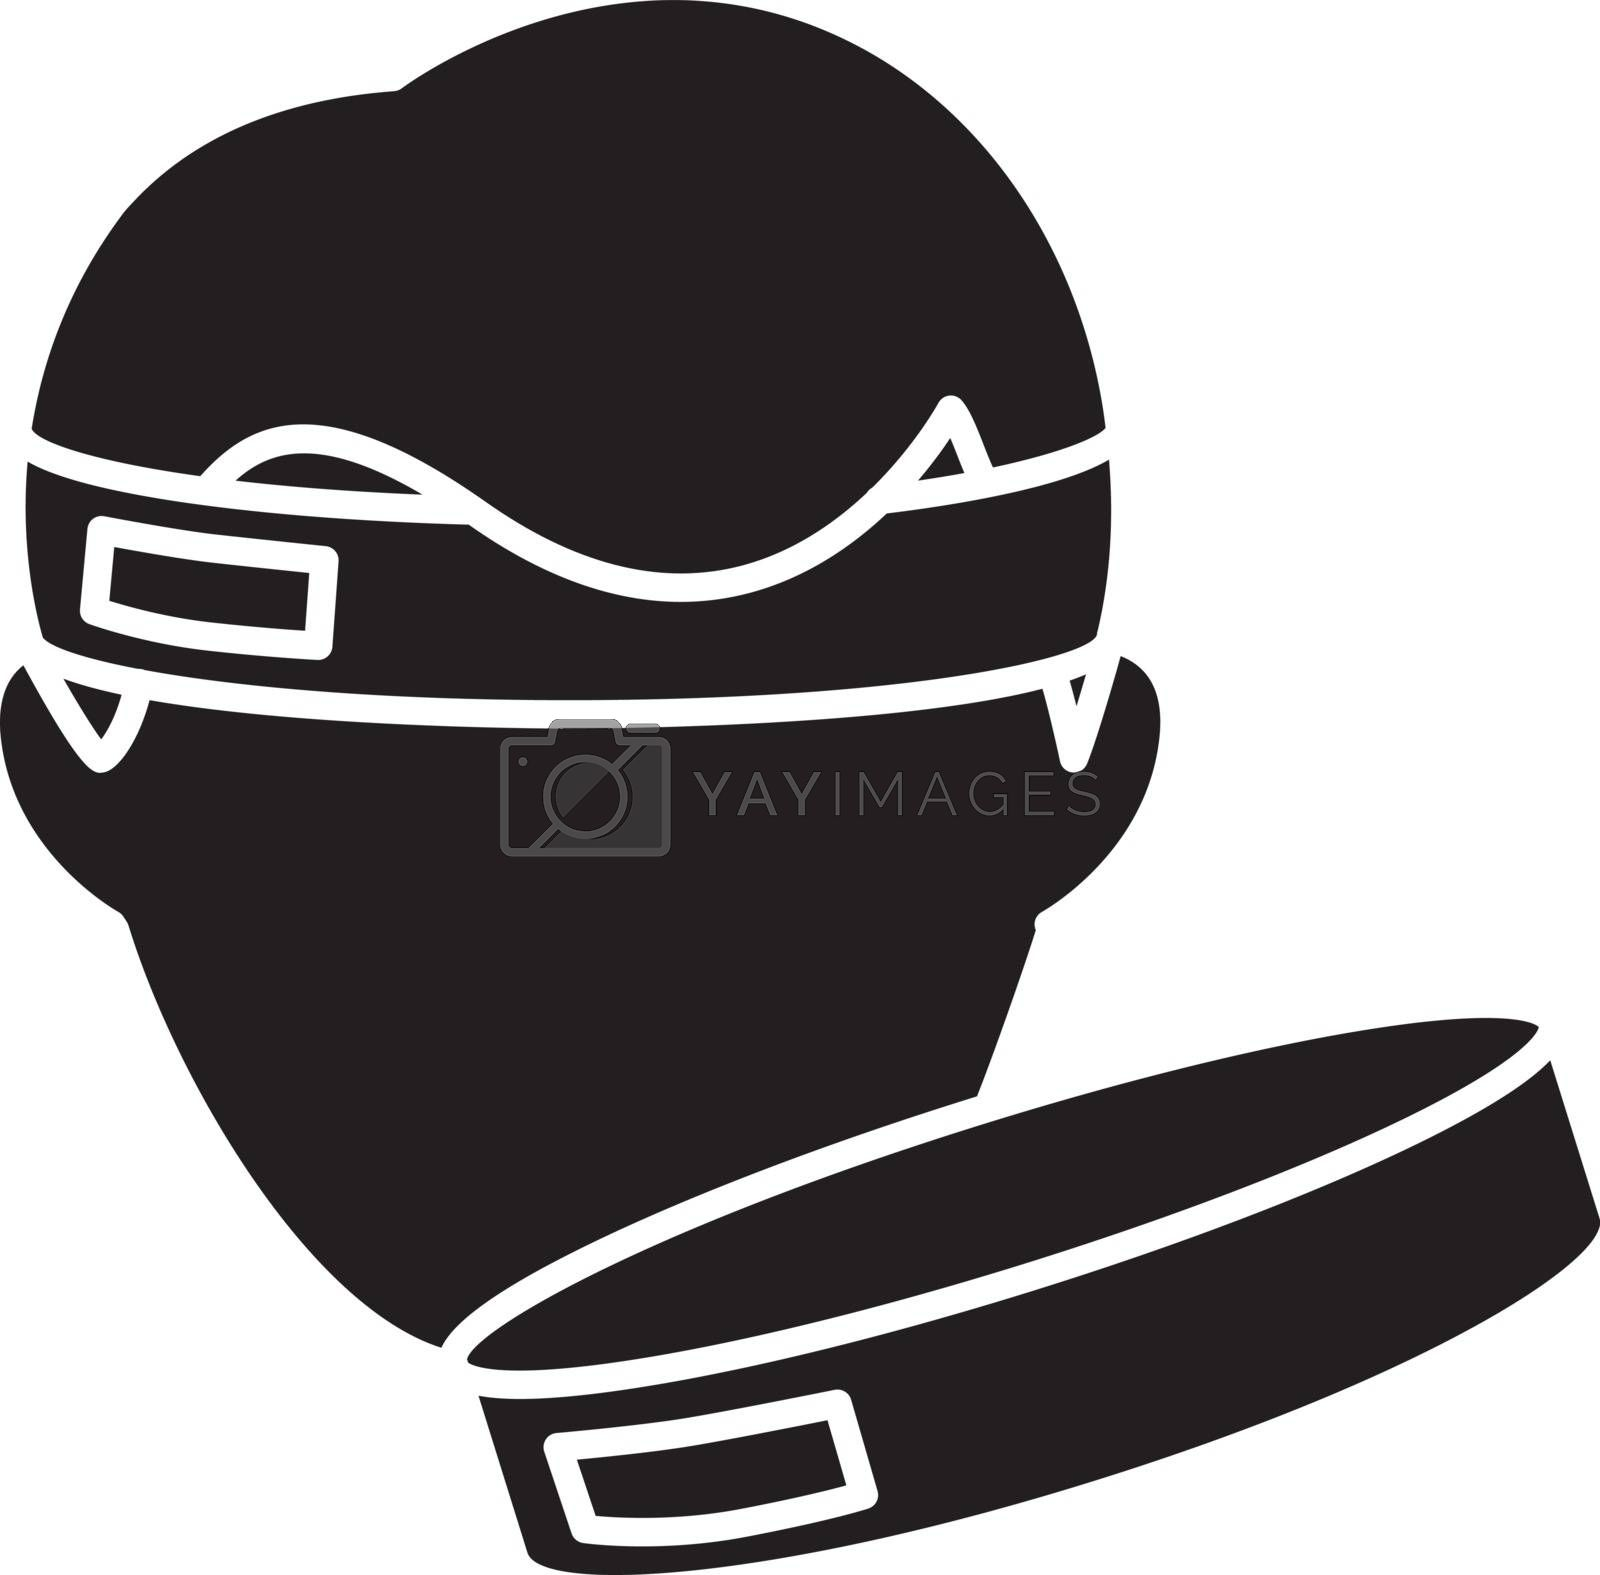 Workout headband black glyph icon. Sportswear for fitness training. Gym equipment silhouette symbol on white space. Sportive headwear for sweat protection. Sweatband vector isolated illustration